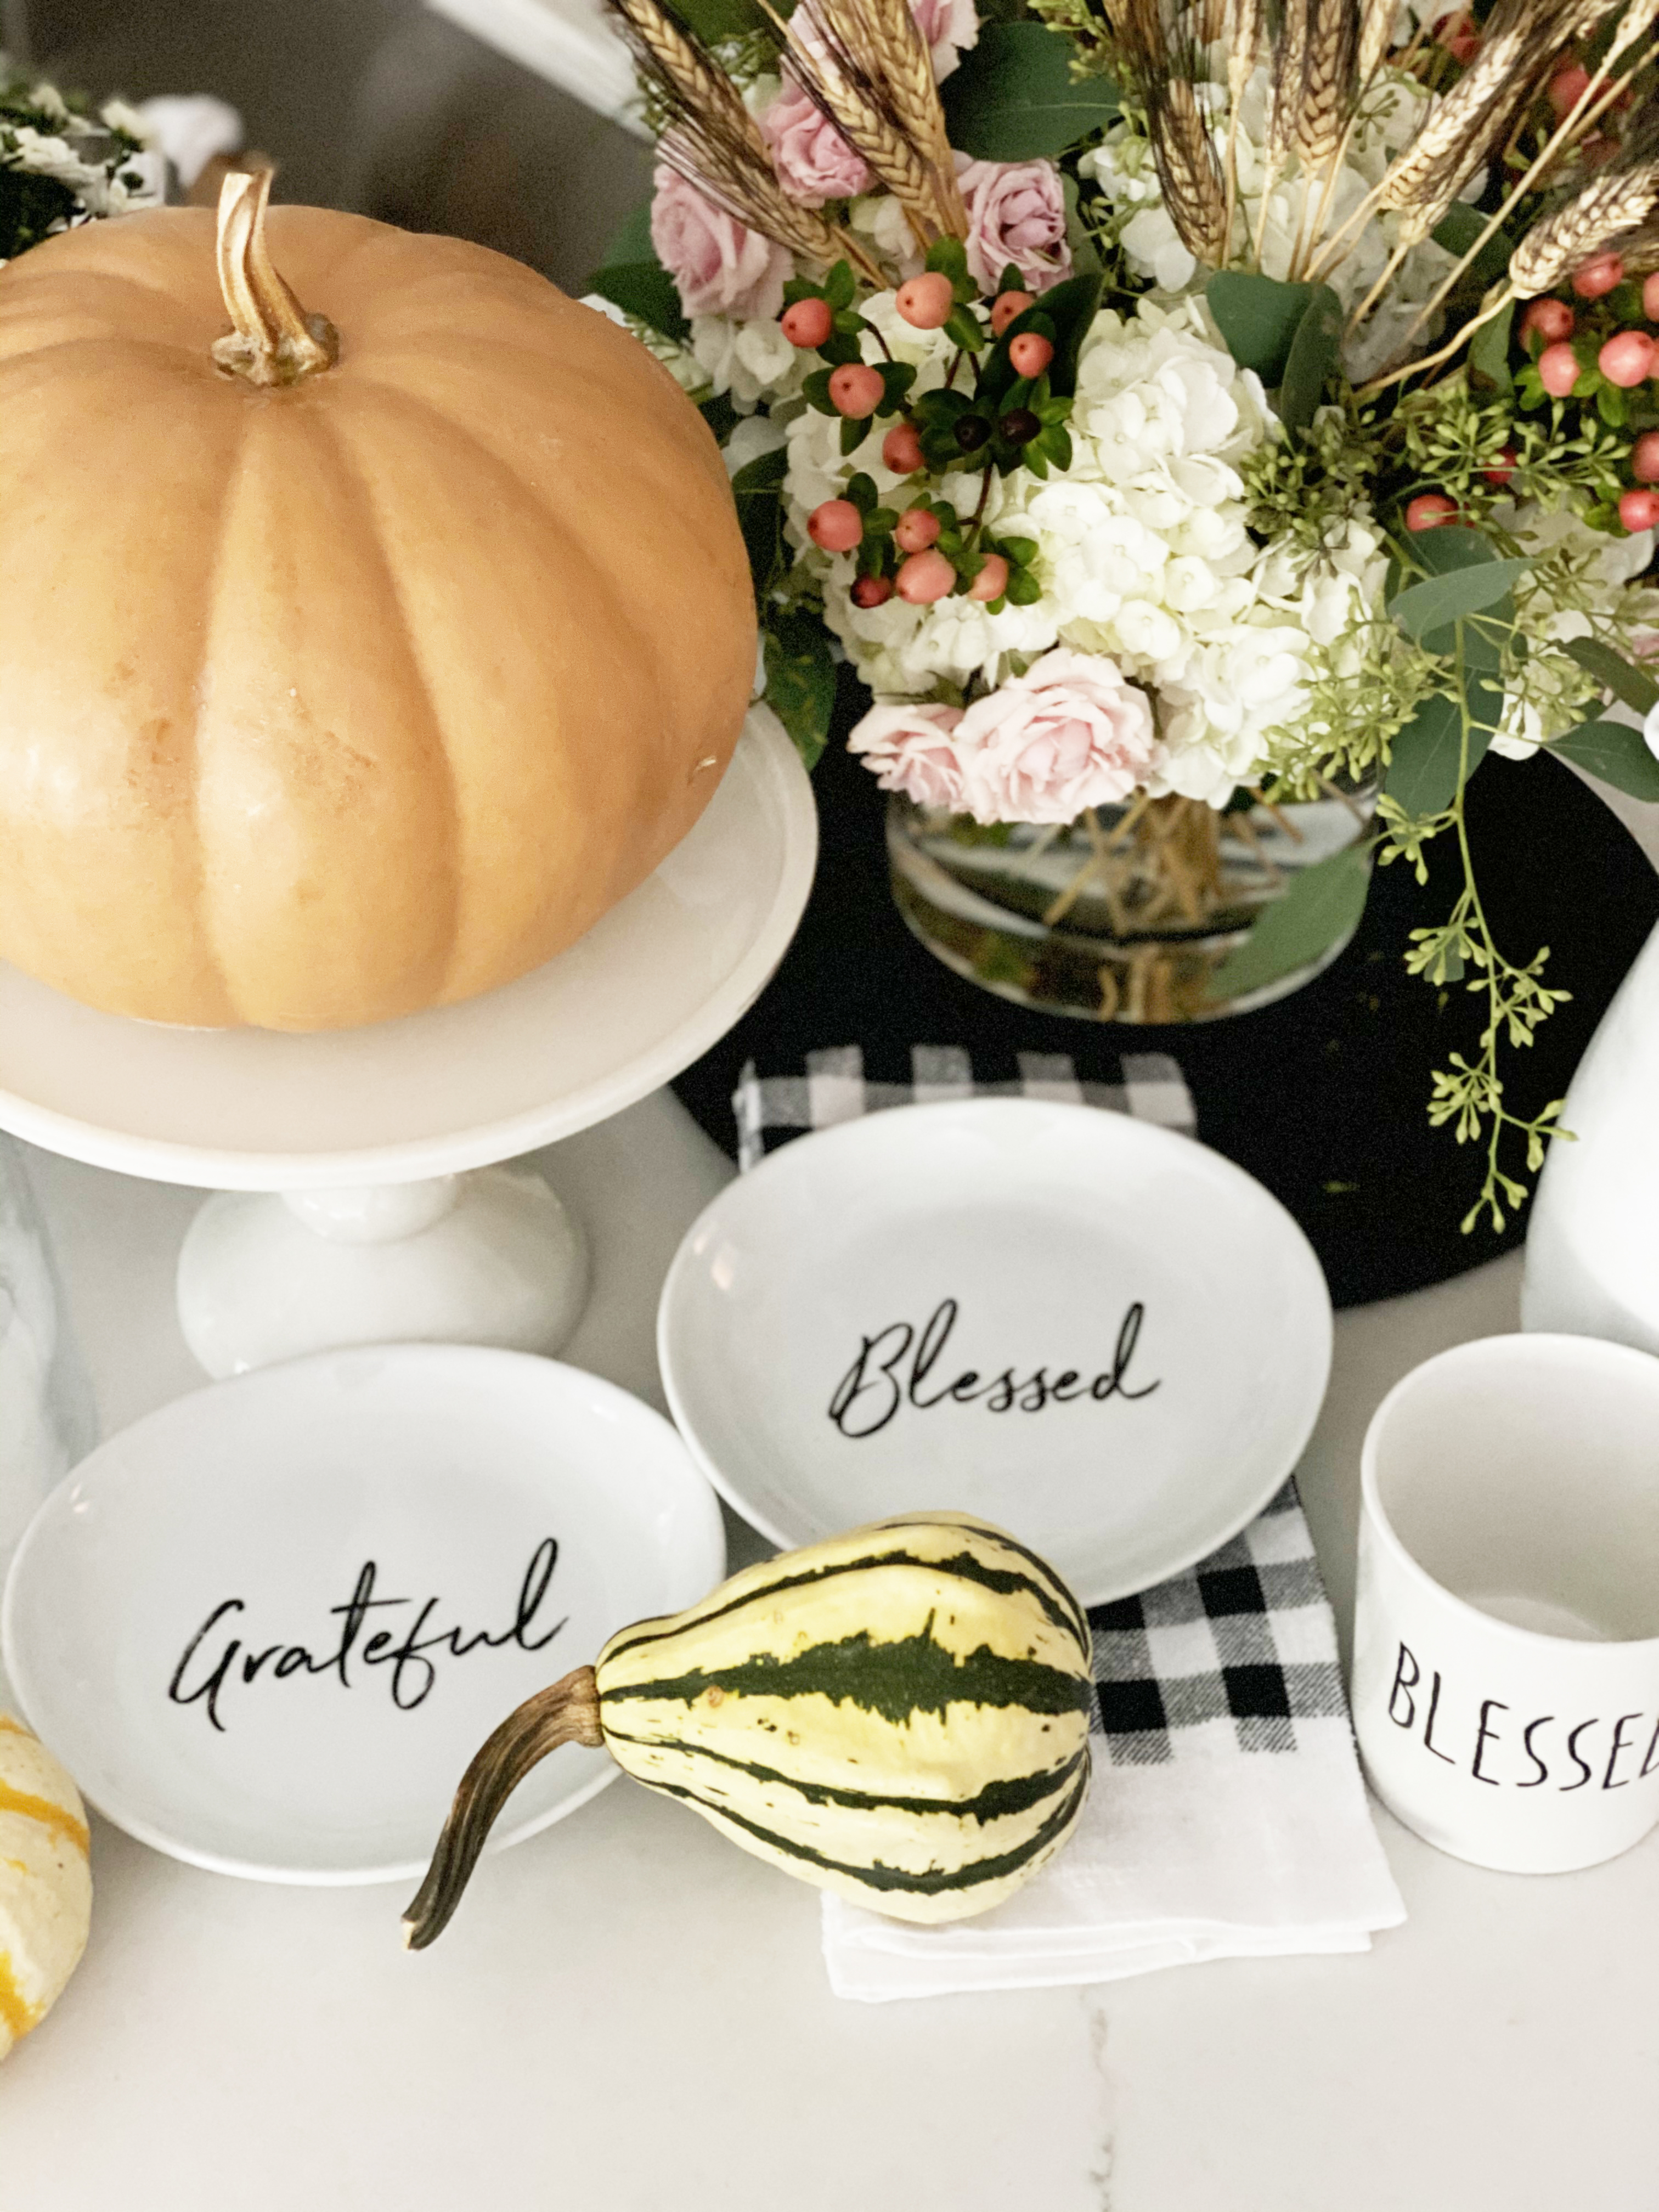 Affordable Fall Front Porch and Tabletop Decor Ideas tabletop fall styling blessed and grateful black and white plates